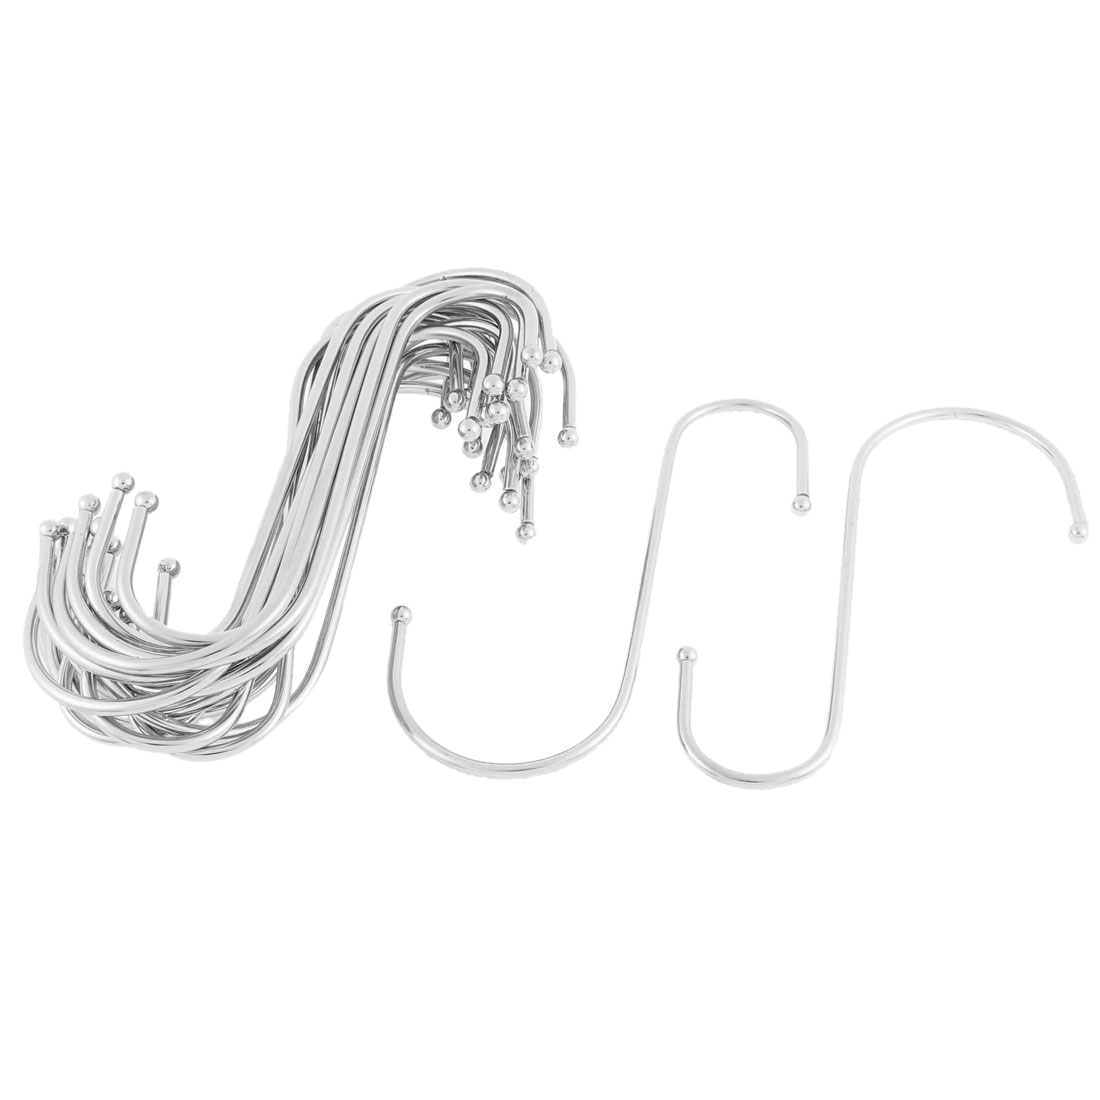 Wardrobe Clothes Stainless Steel S Shaped Hooks Hangers Holder 20pcs